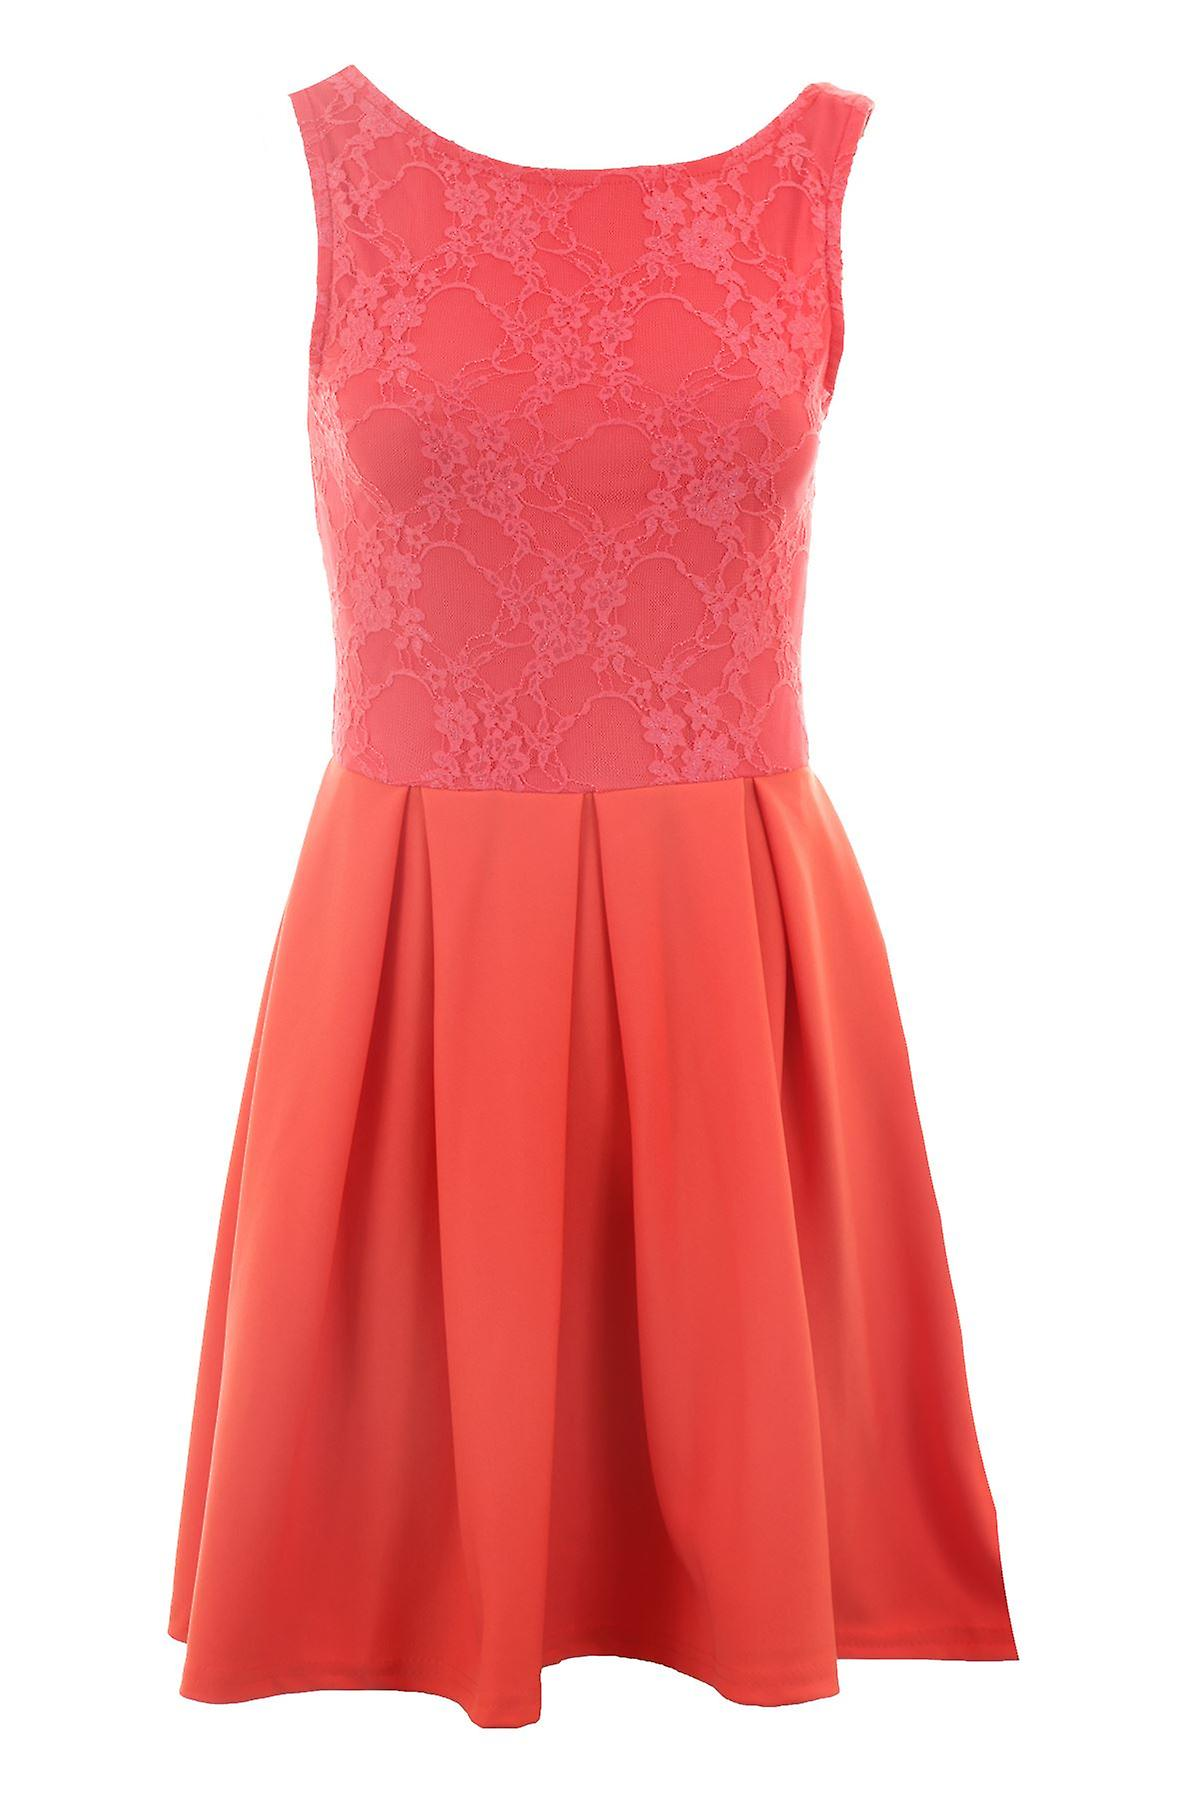 New Ladies Sleeveless Floral Lace Top Skater Skirt Women's Dress